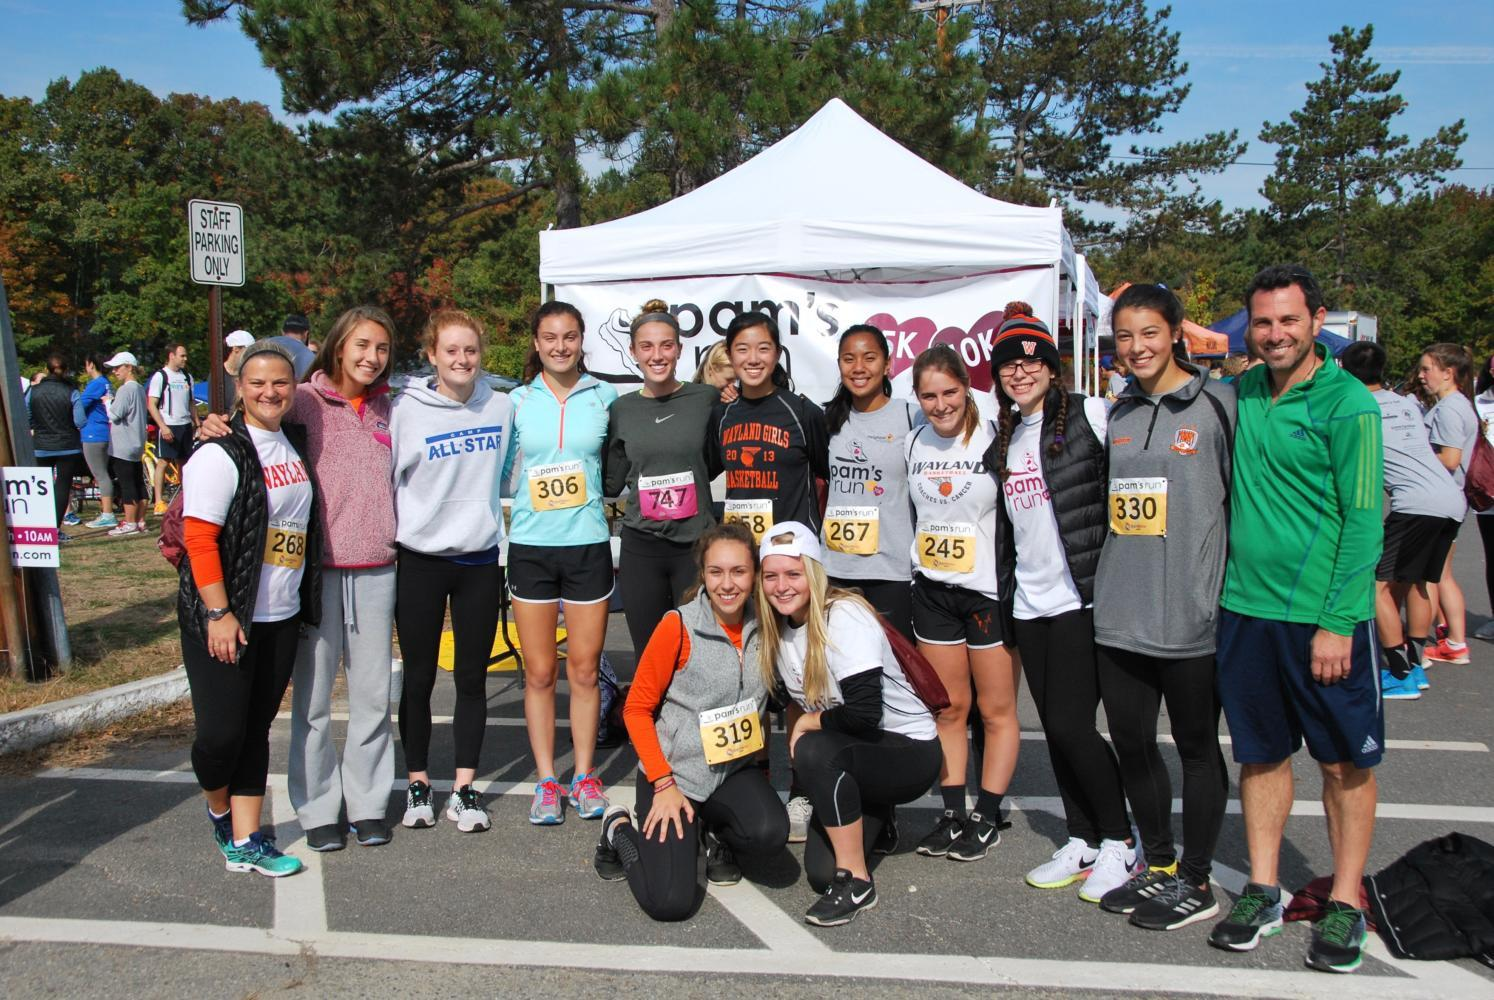 "Pictured above is the 2016 WHS girls' soccer team and coaches before the 4th annual Pam's Run last year. This year, the race will be held on Sunday, October 15 at Claypit Hill School. ""It's a great way to get involved and help with community service,"